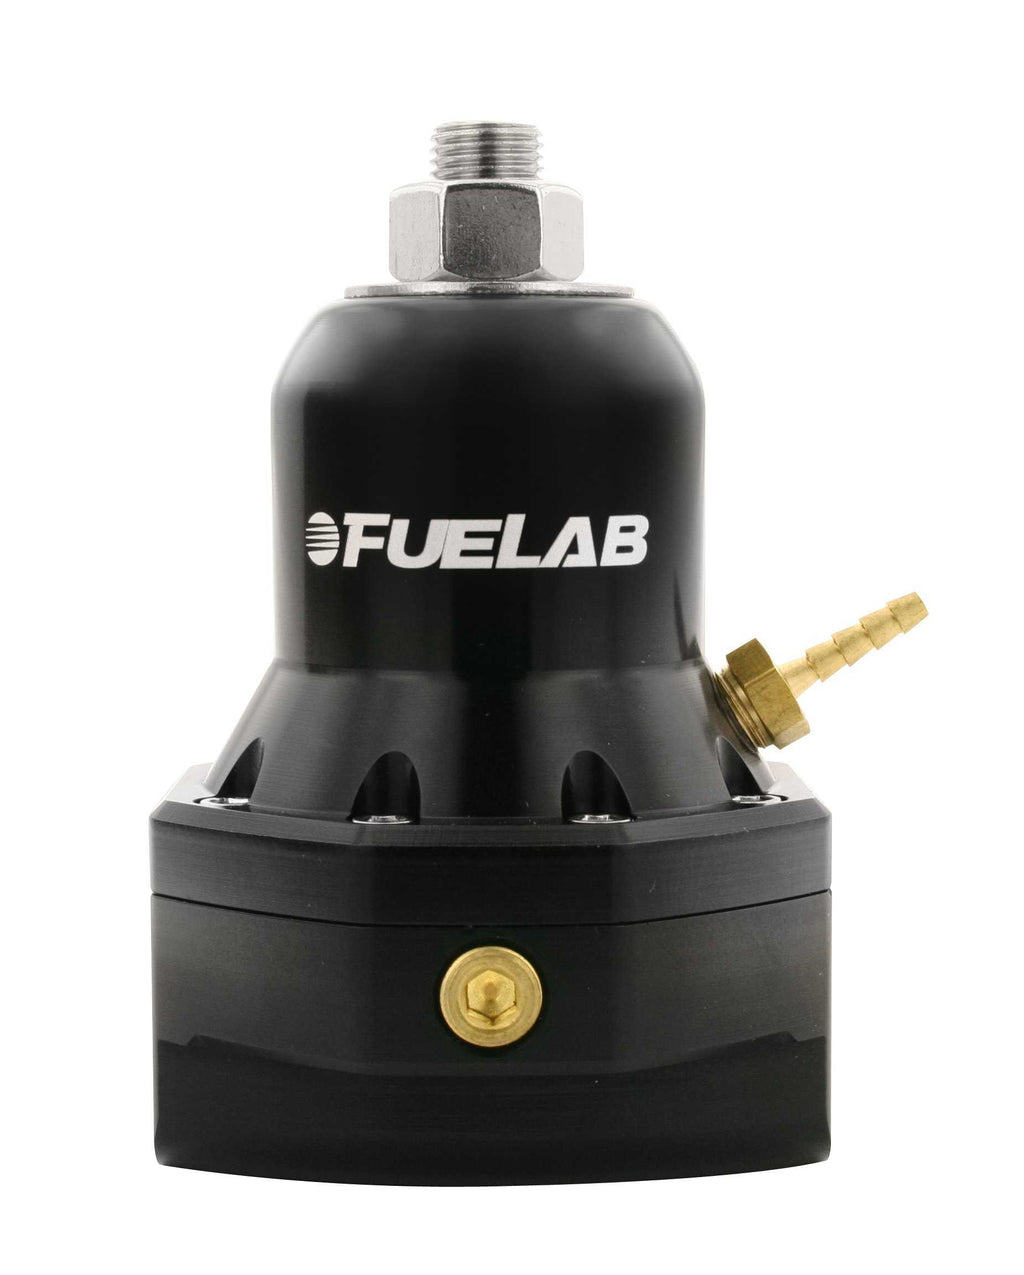 FUELAB 565 Series Fuel Pressure Regulators BIGBOY - SIMPLETECHNIQES  PERFORMANCE